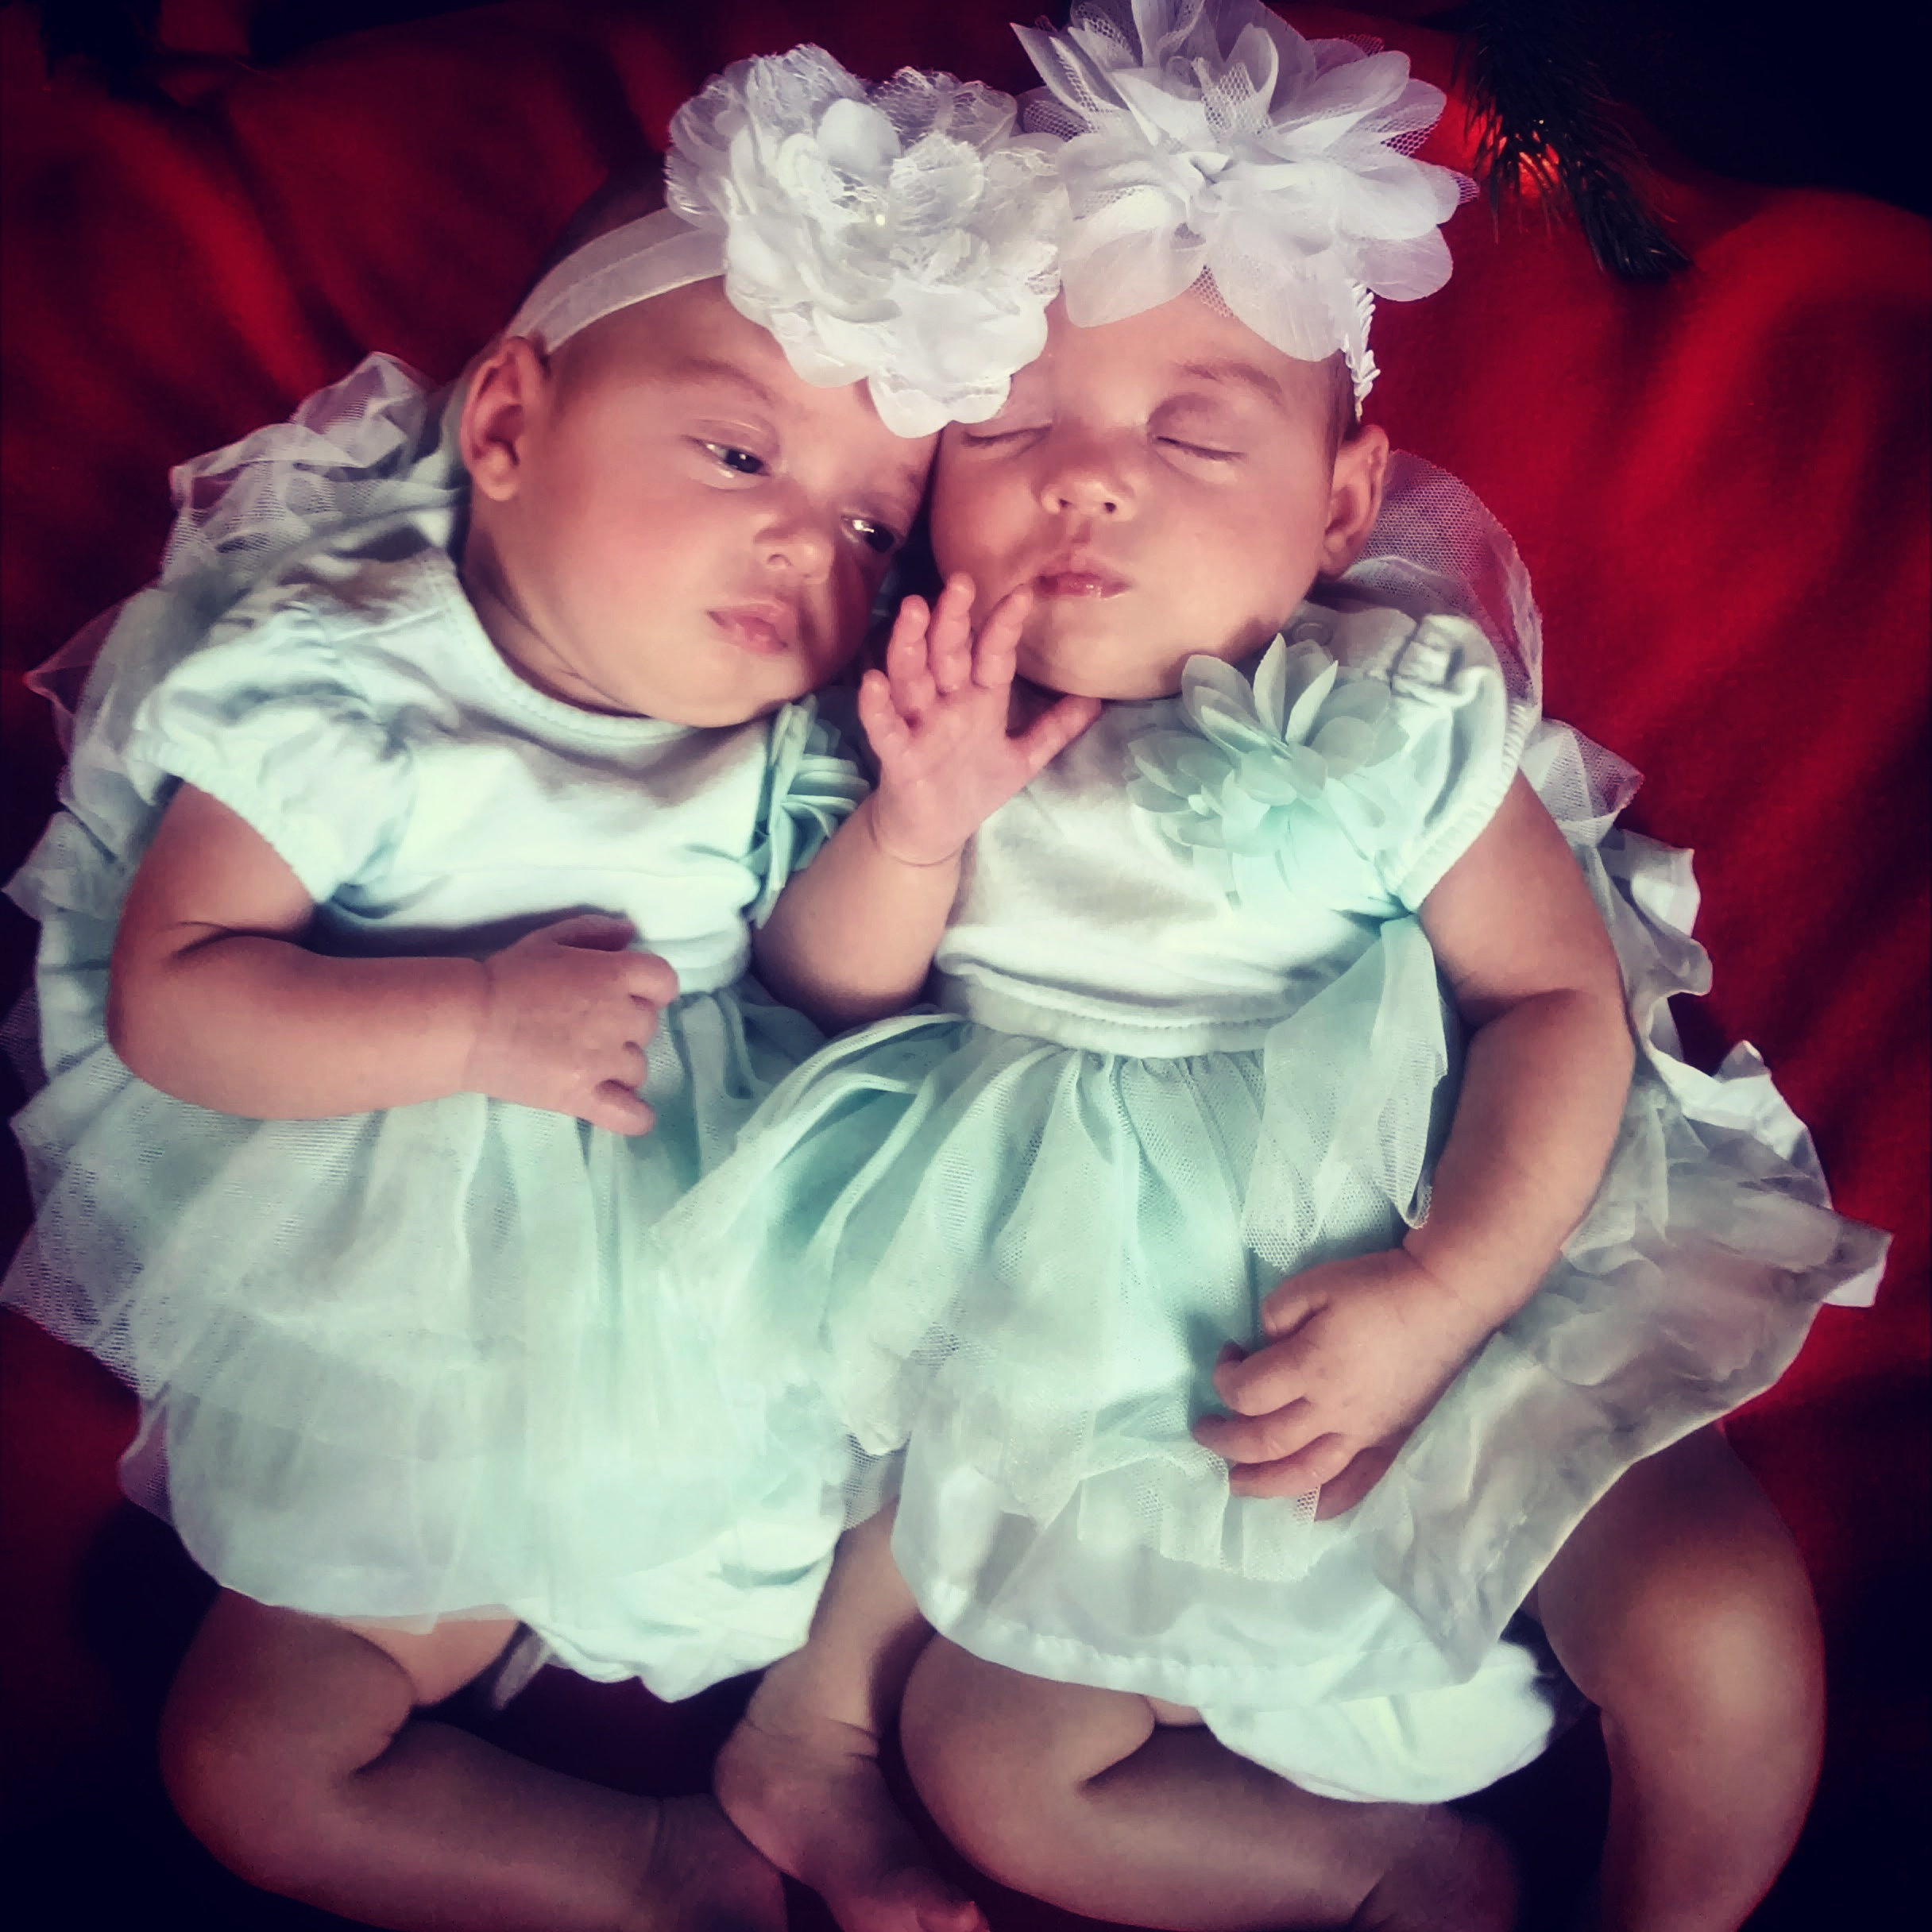 My twins. My everything. My prize.  They became my idols.